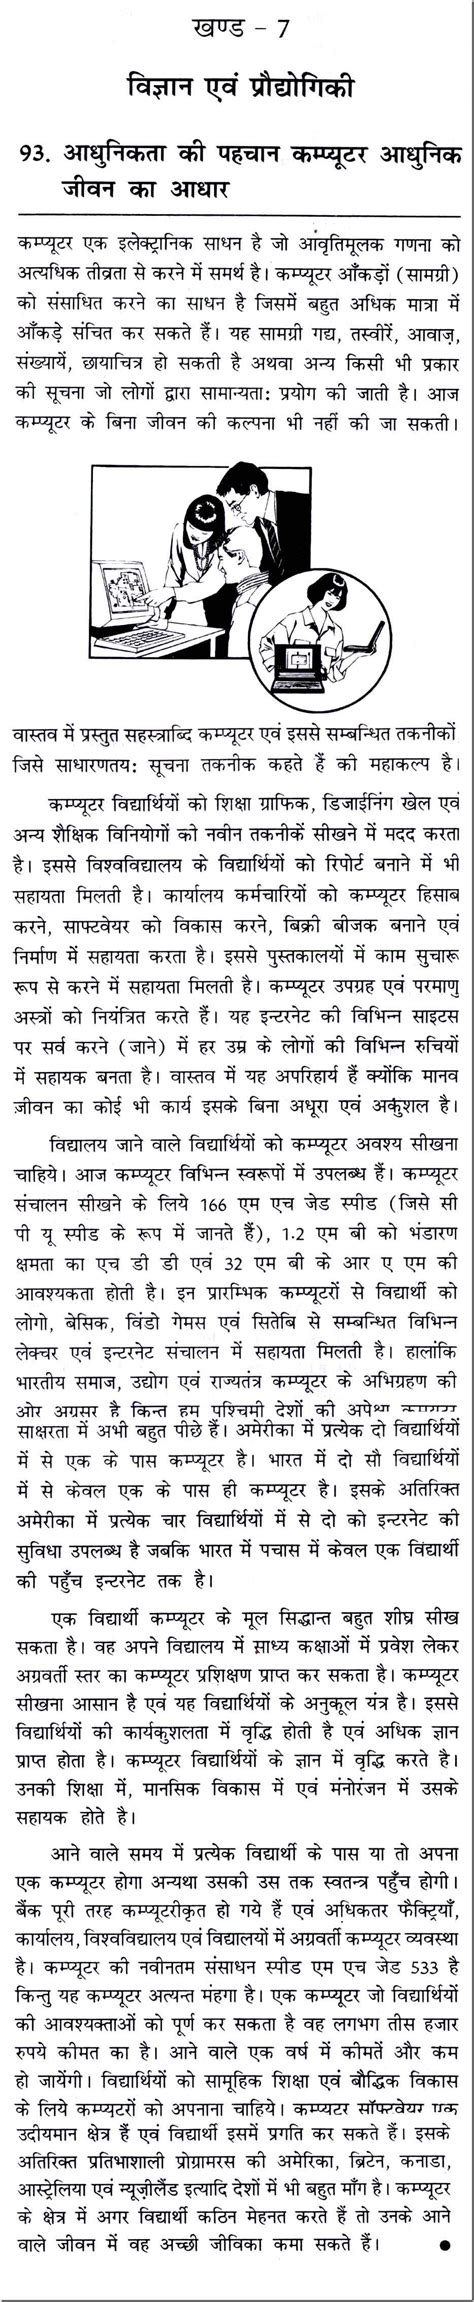 computer biography in hindi essay on the importance of computer in our modern life